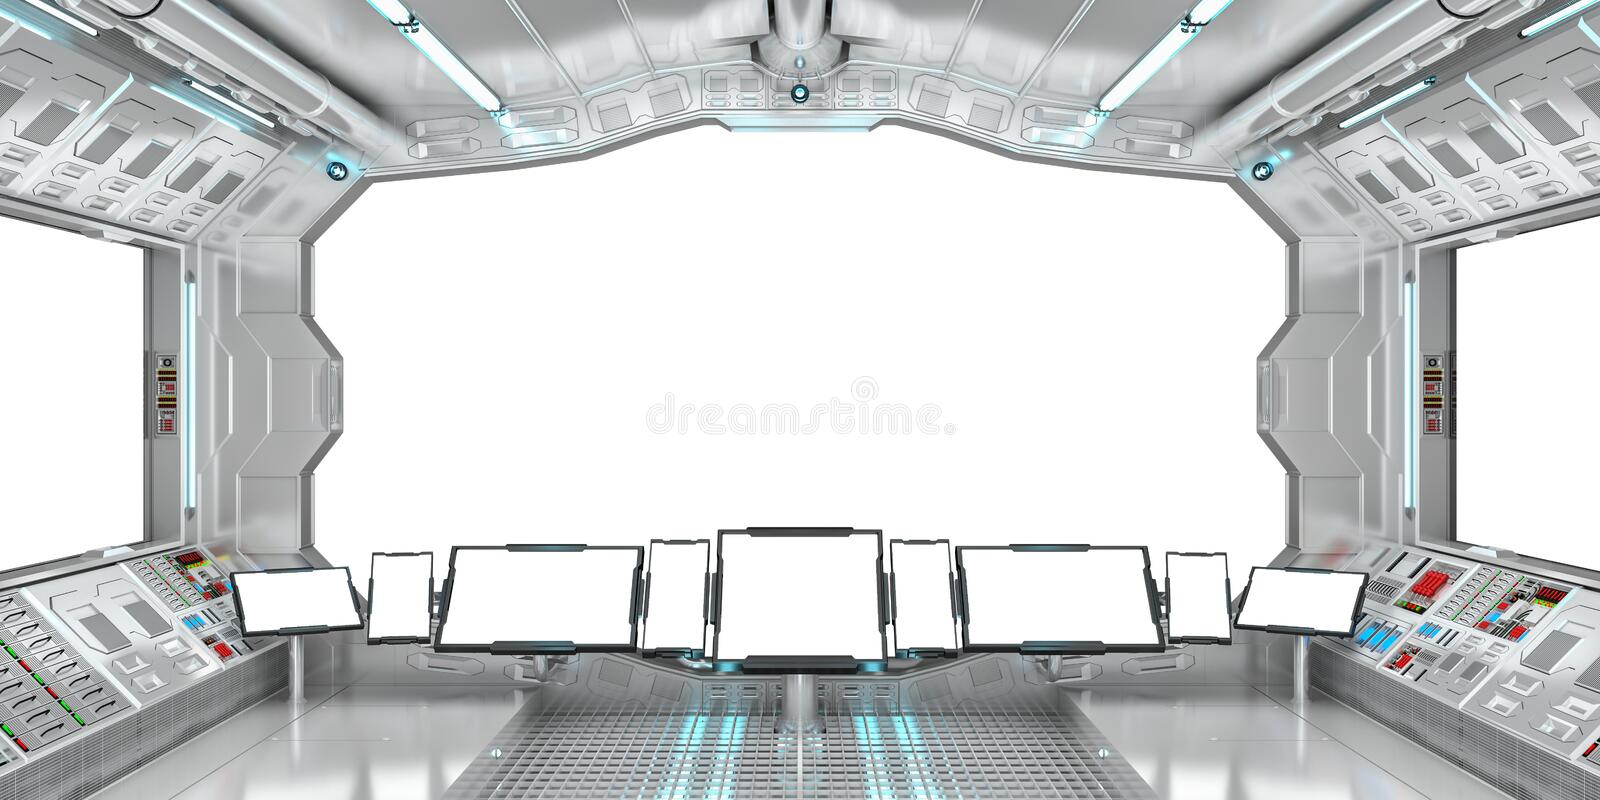 Spaceship interior with view on white windows 3D rendering stock illustration